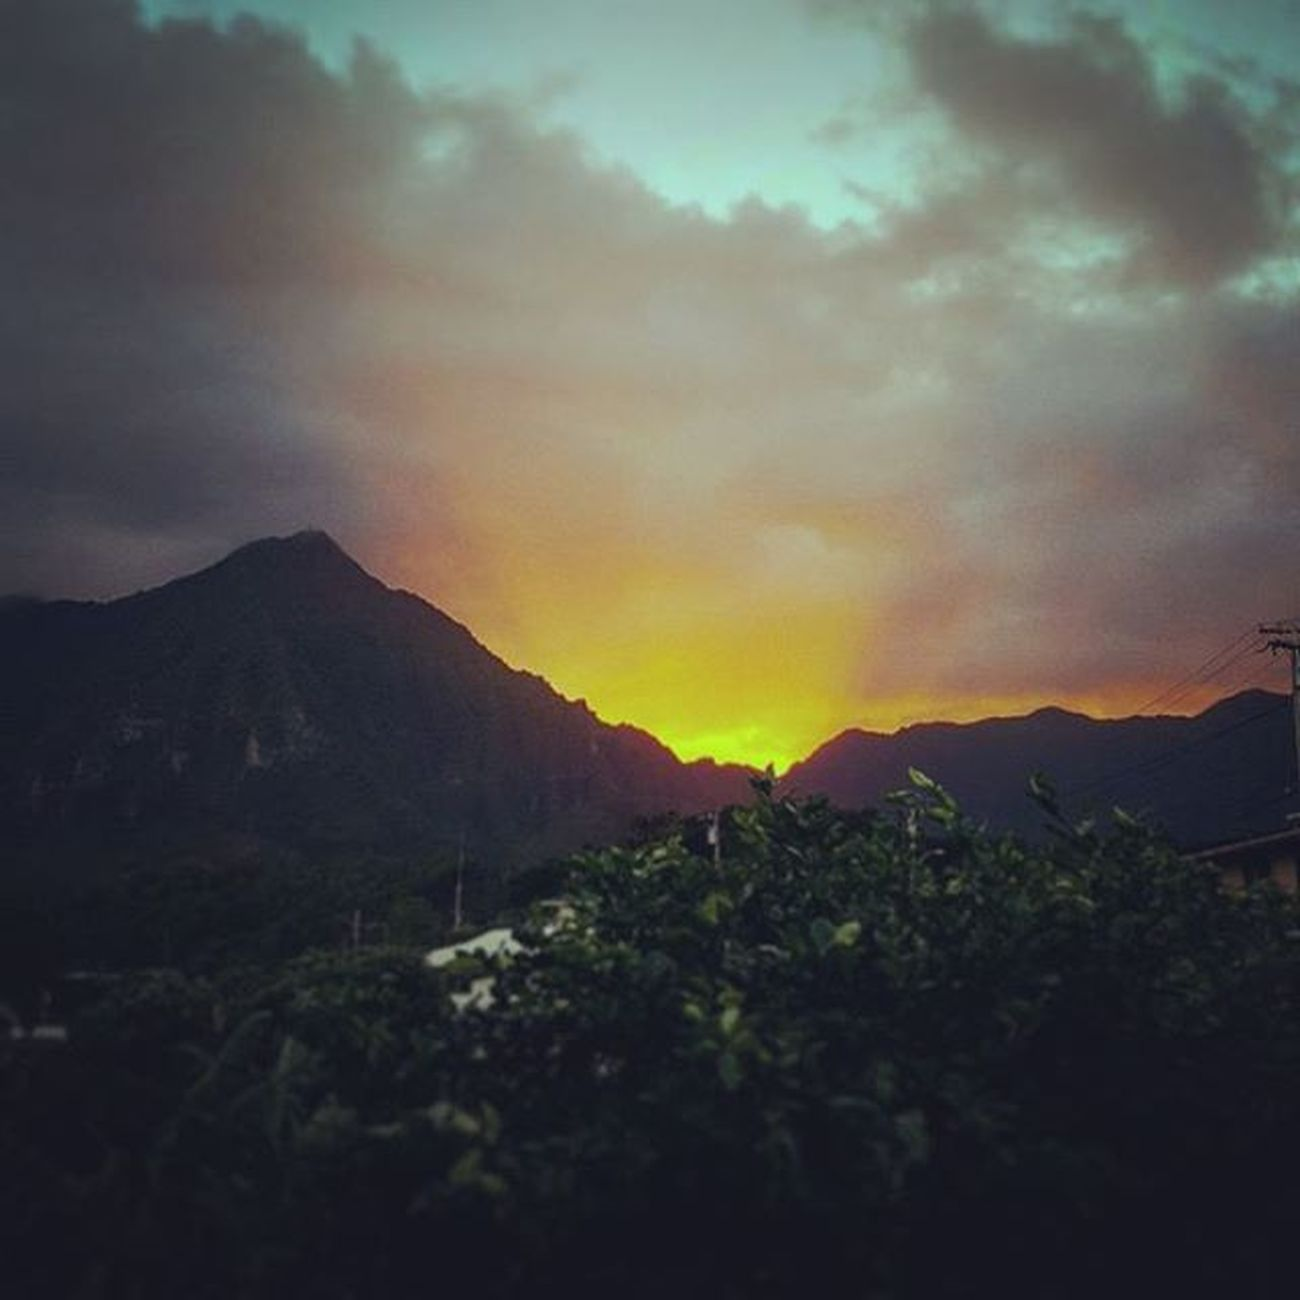 Stop to take the sights in Sunset Firerysky Backyard Luckywelivehawaii Epichi Cloudy Koolaus Hawaiiunchained